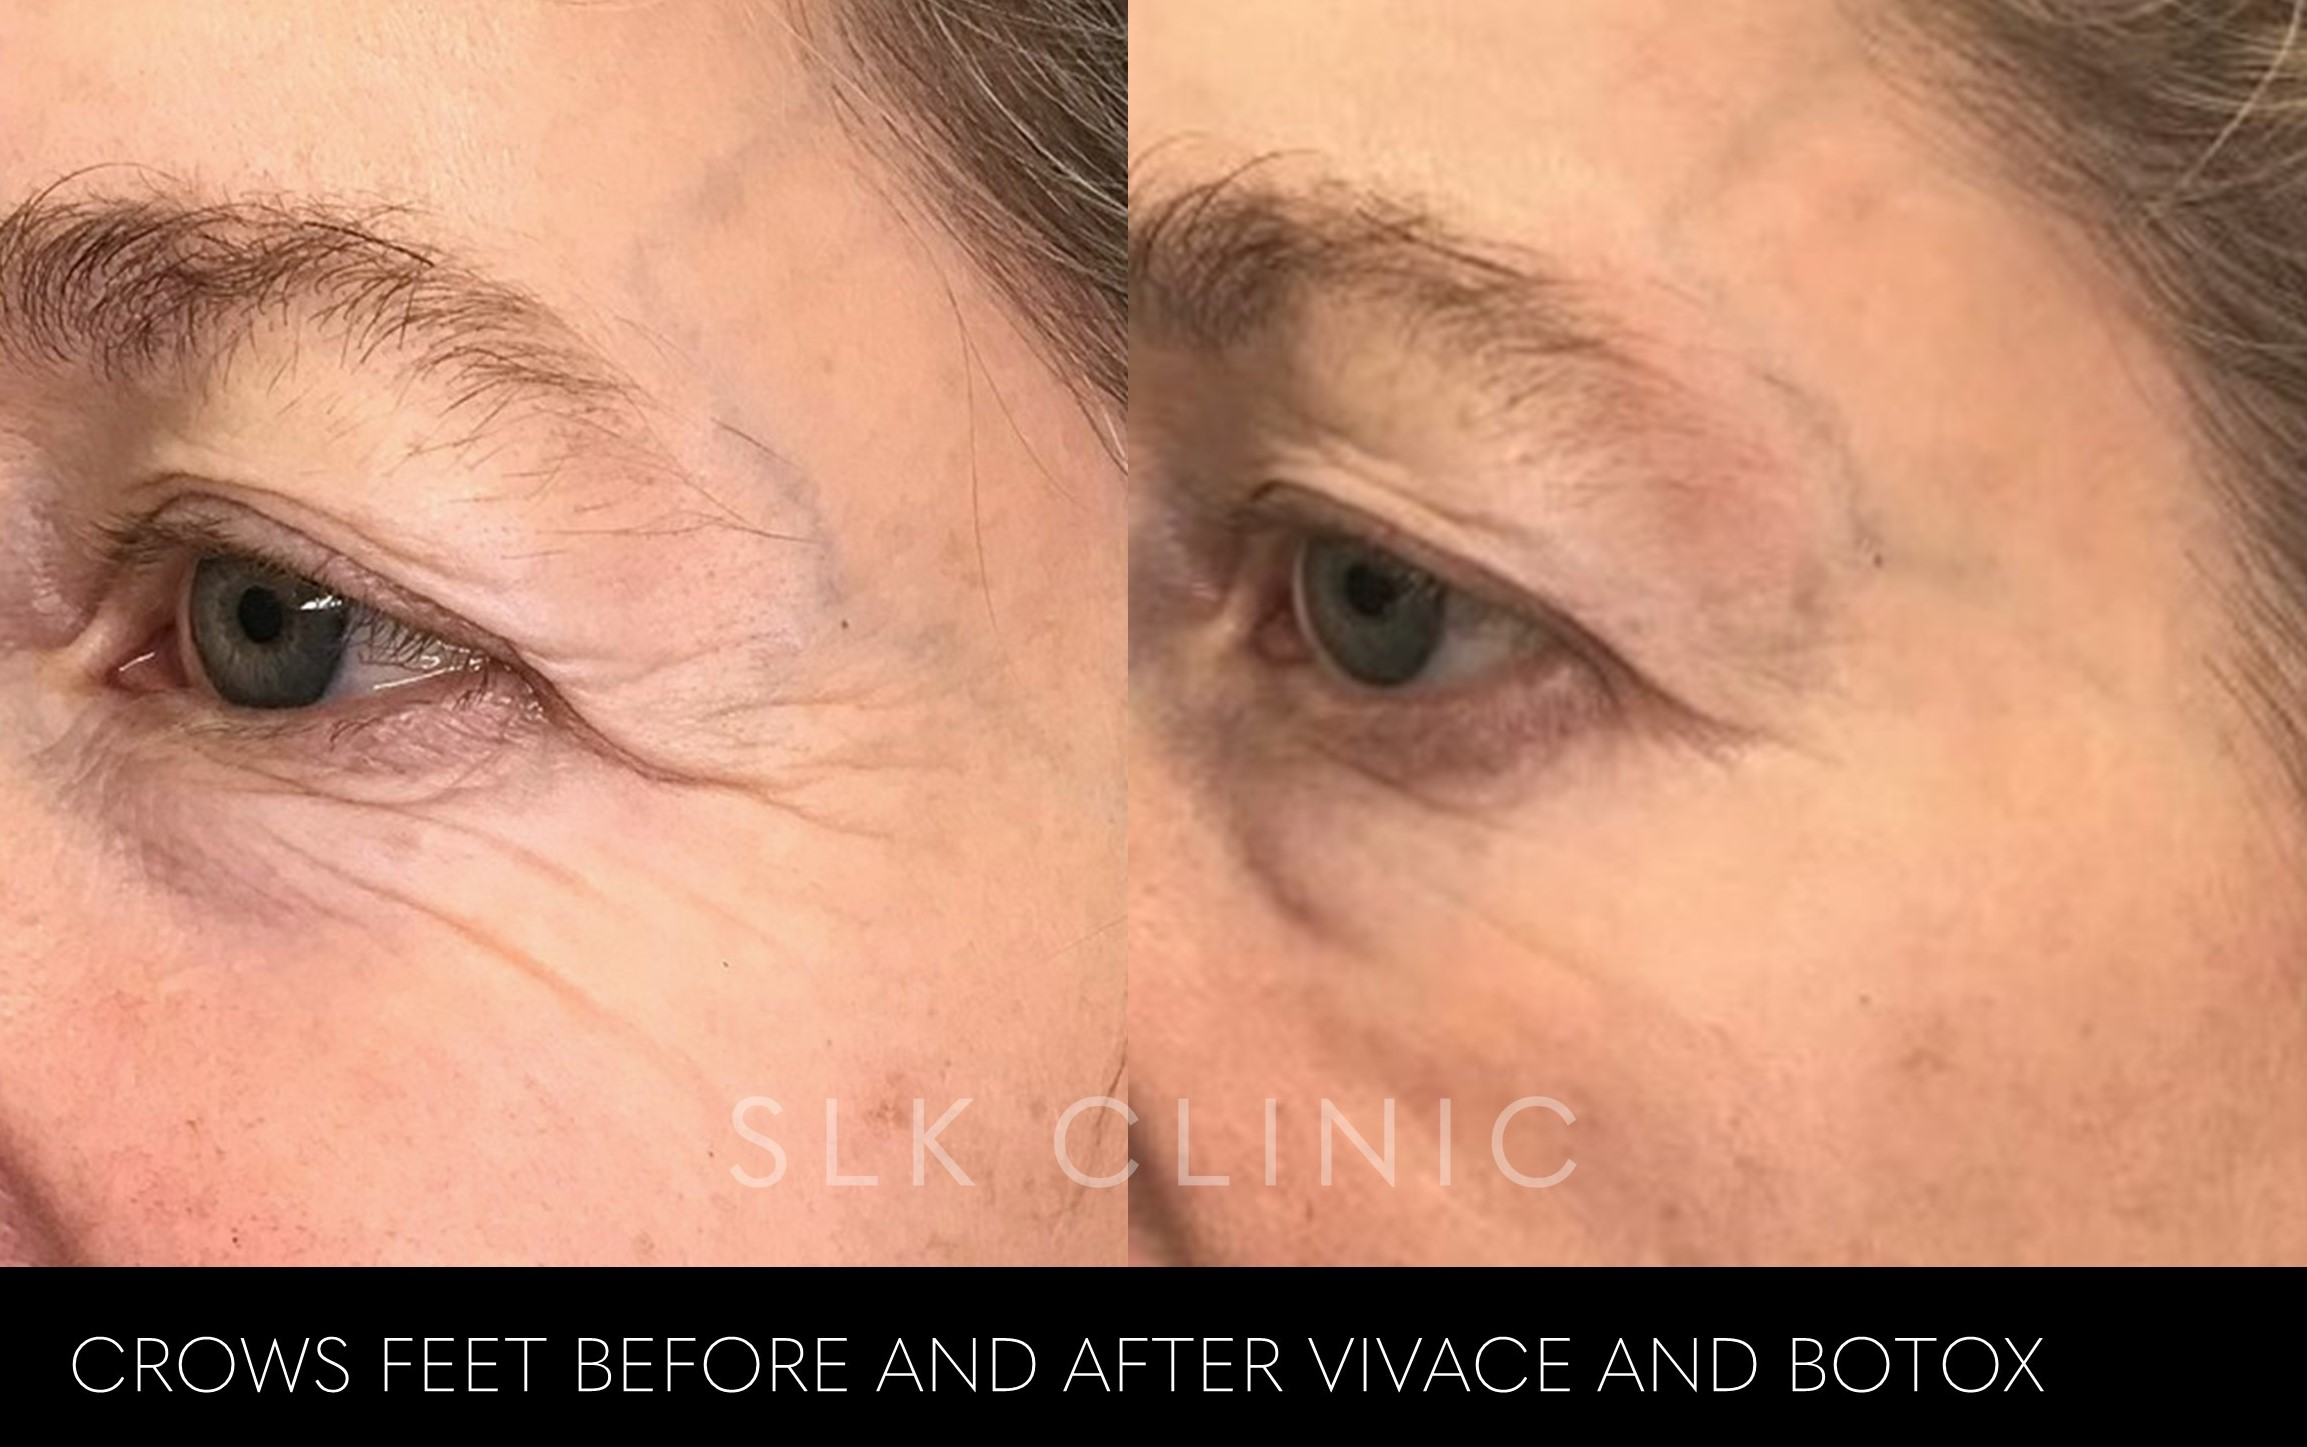 before and after 1 vivace crows feet tightening loose skin woman nashville tennessee SLK